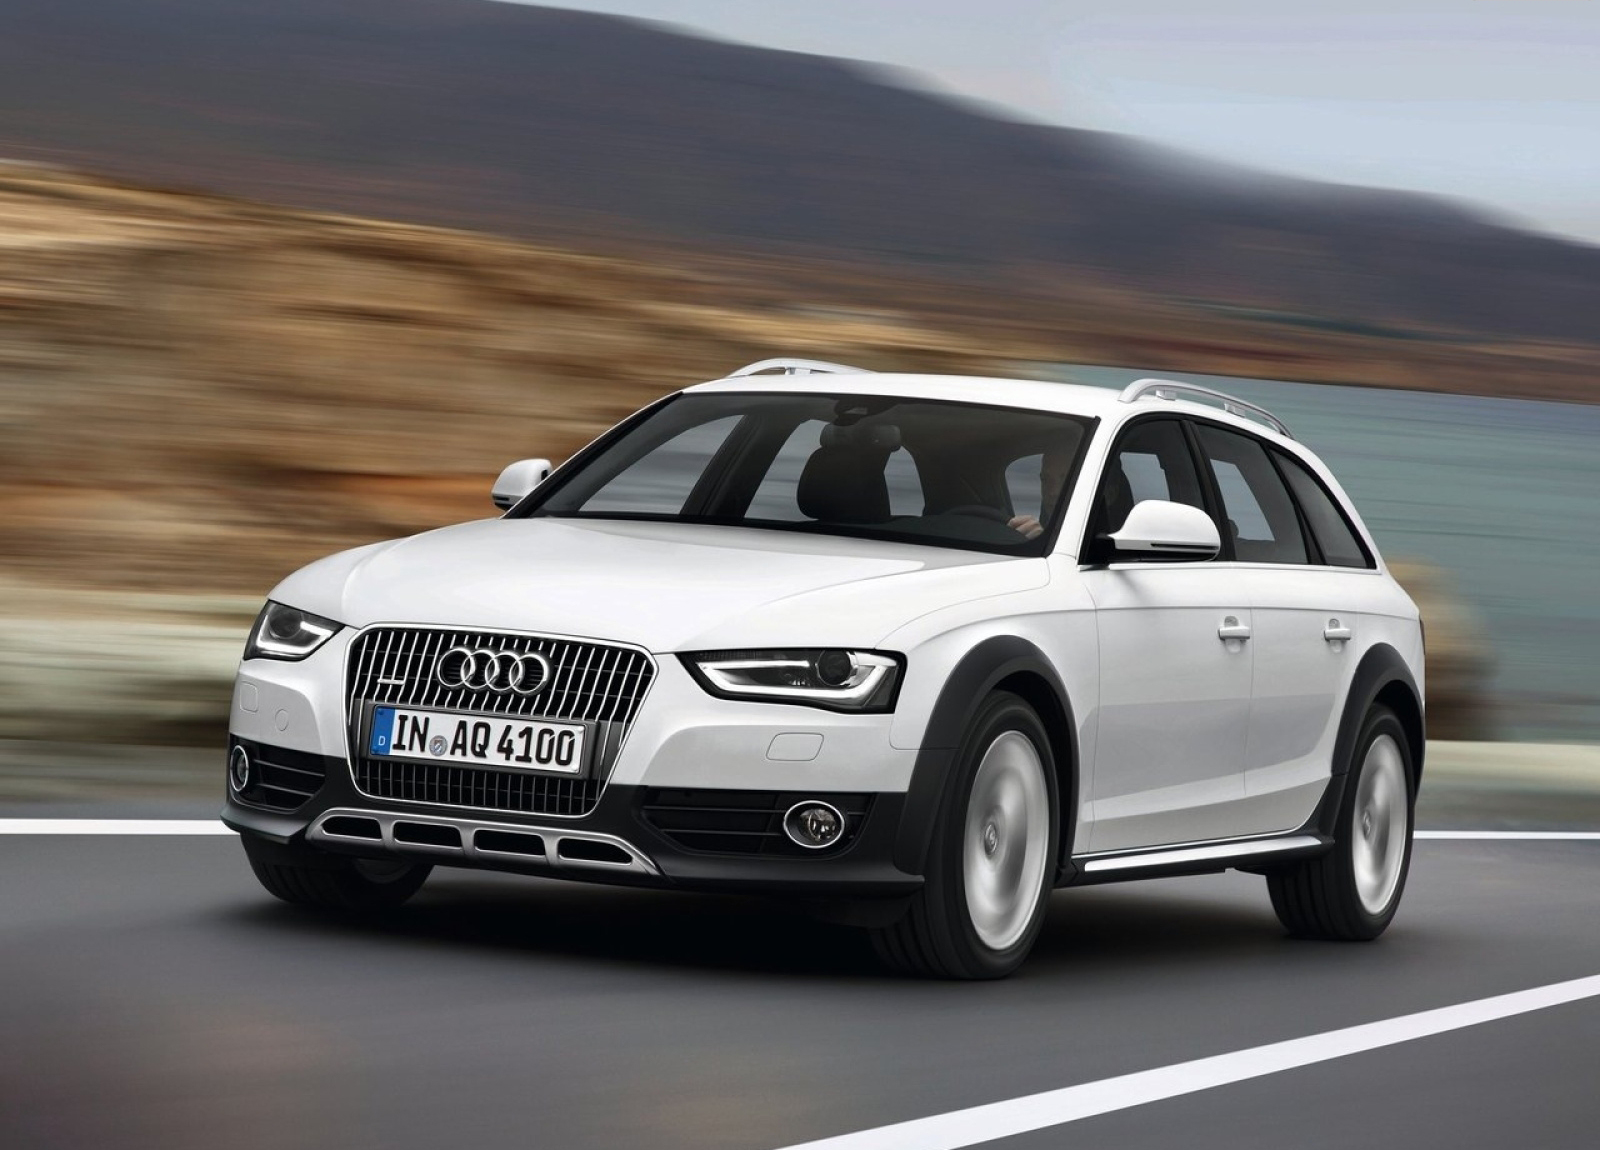 Audi A4 Allroad Hd Wallpapers The World Of Wallpaper - small